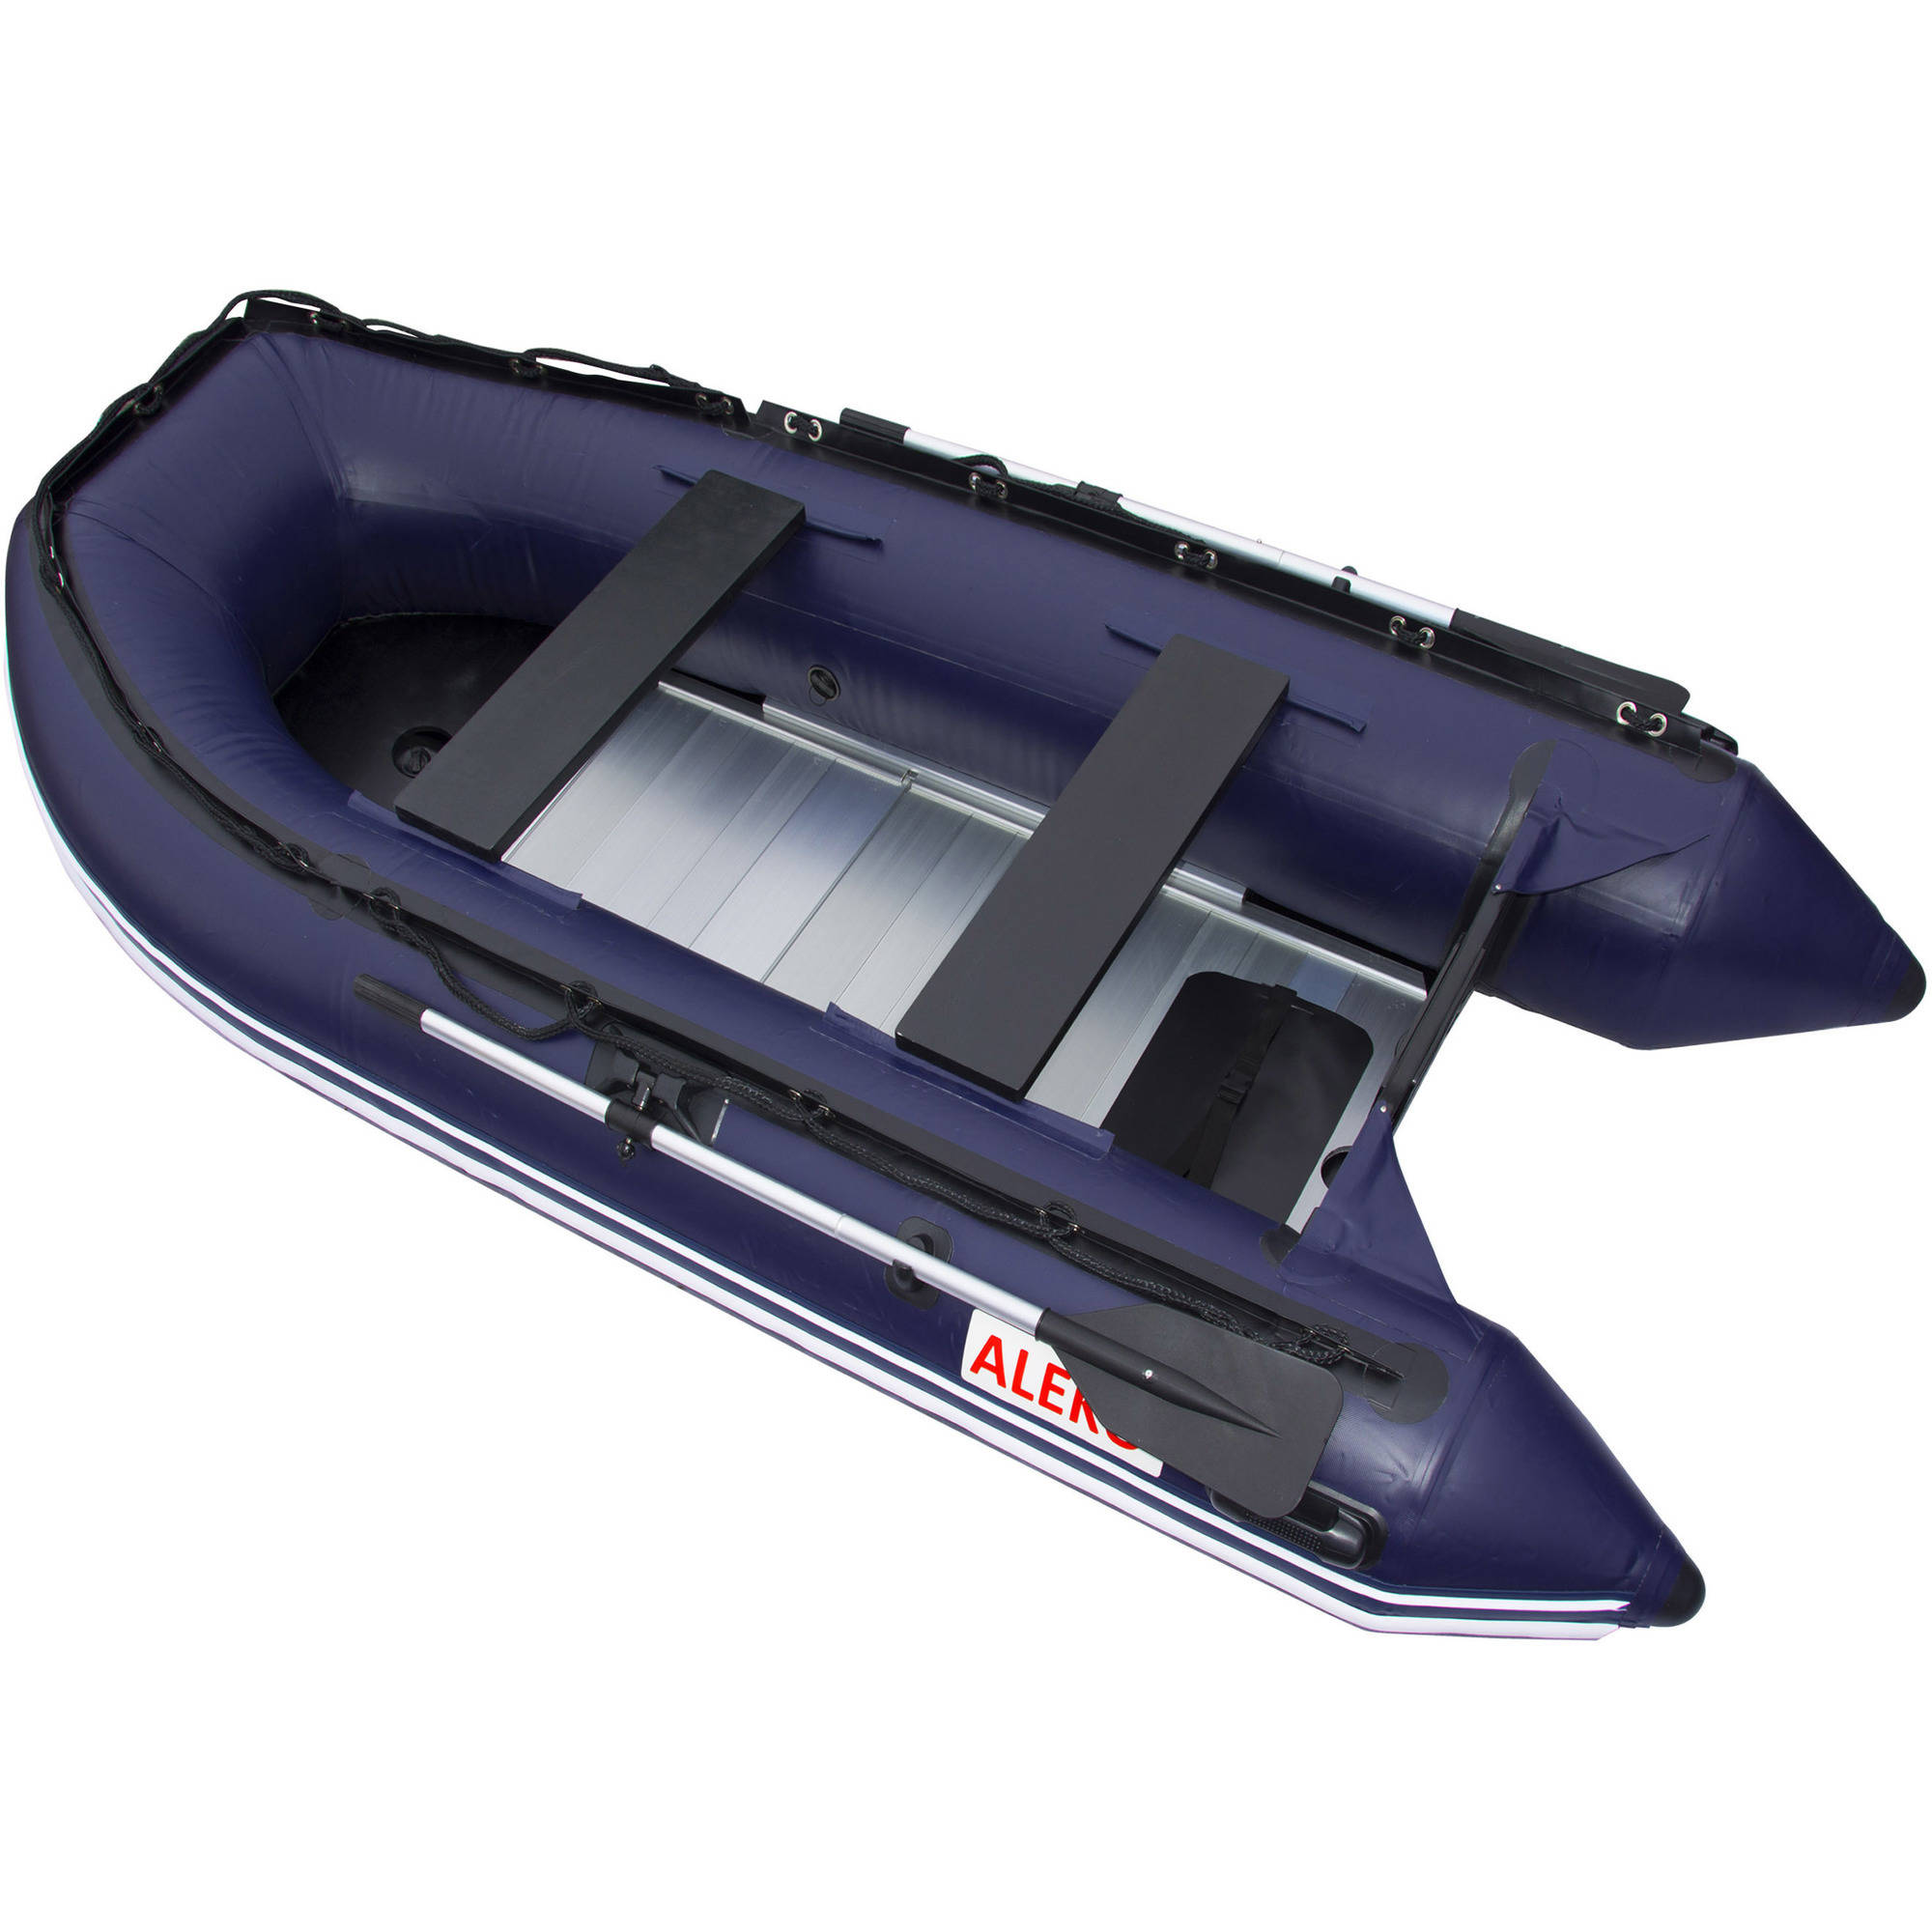 "ALEKO Boat 320 150cm 10'5"" Inflatable Boat with Aluminum Floor, Blue by ALEKO"